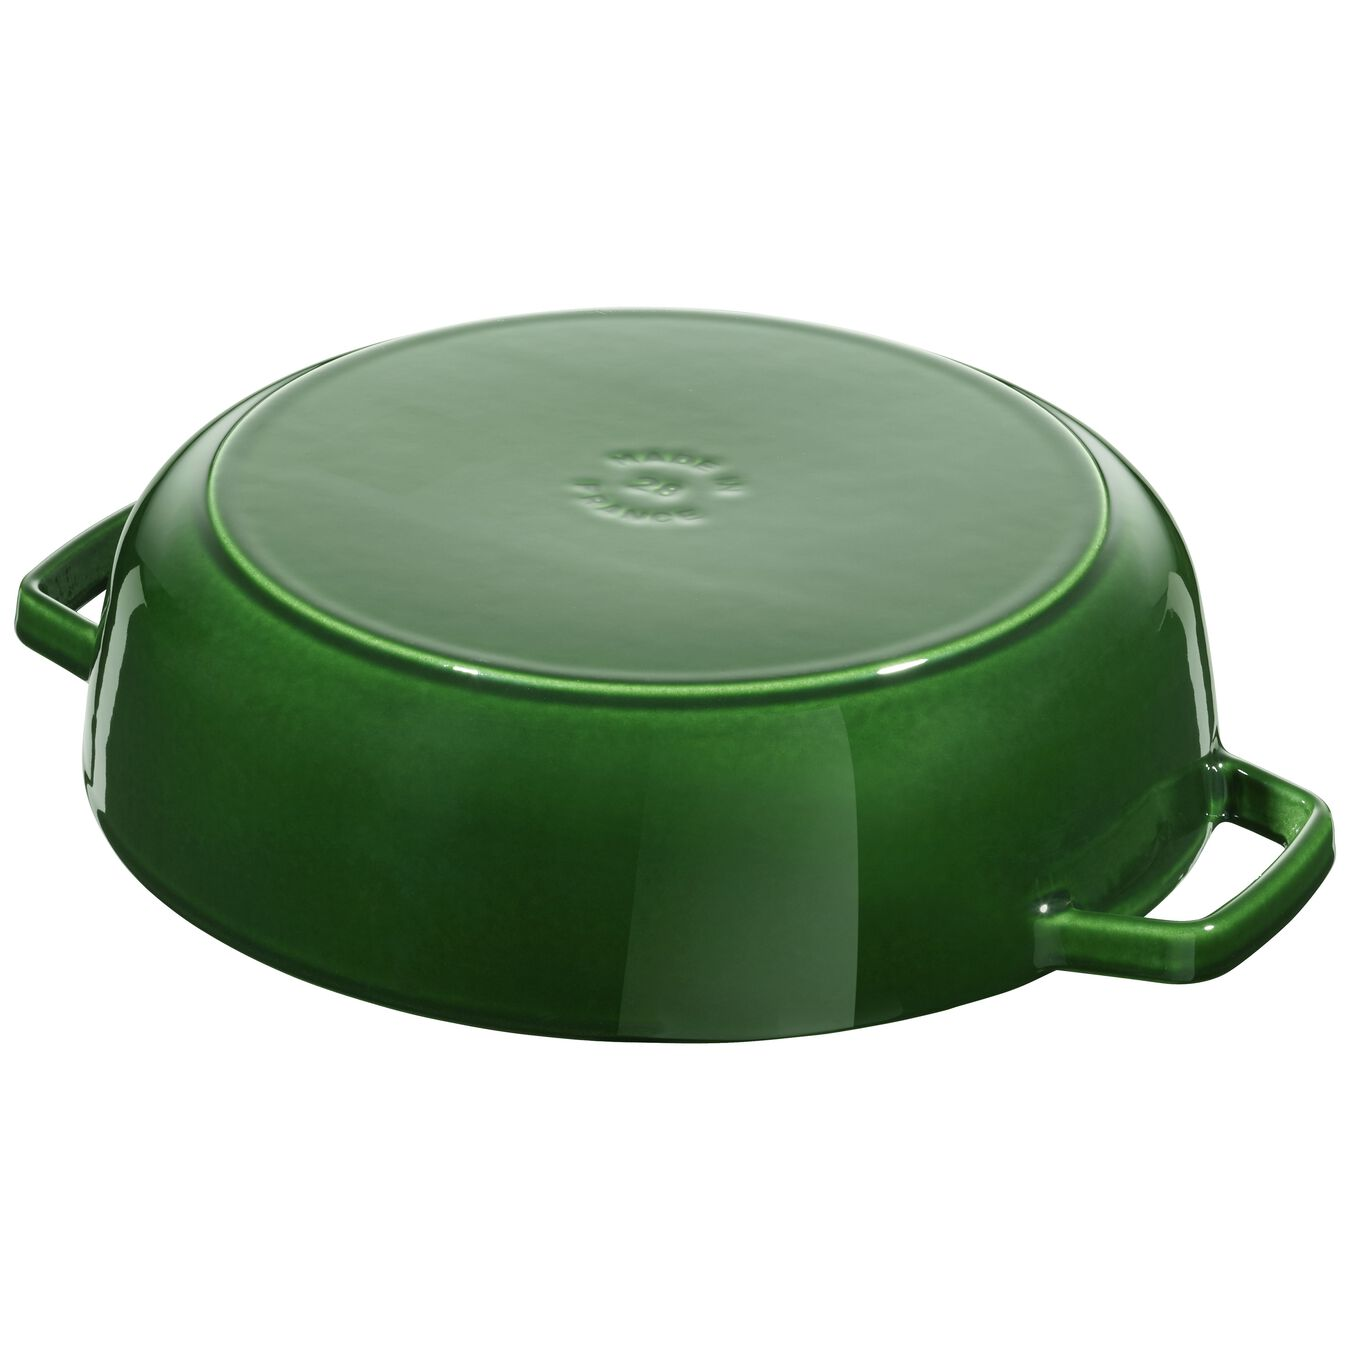 2.5 l Cast iron round Saute pan Chistera, Basil-Green,,large 6